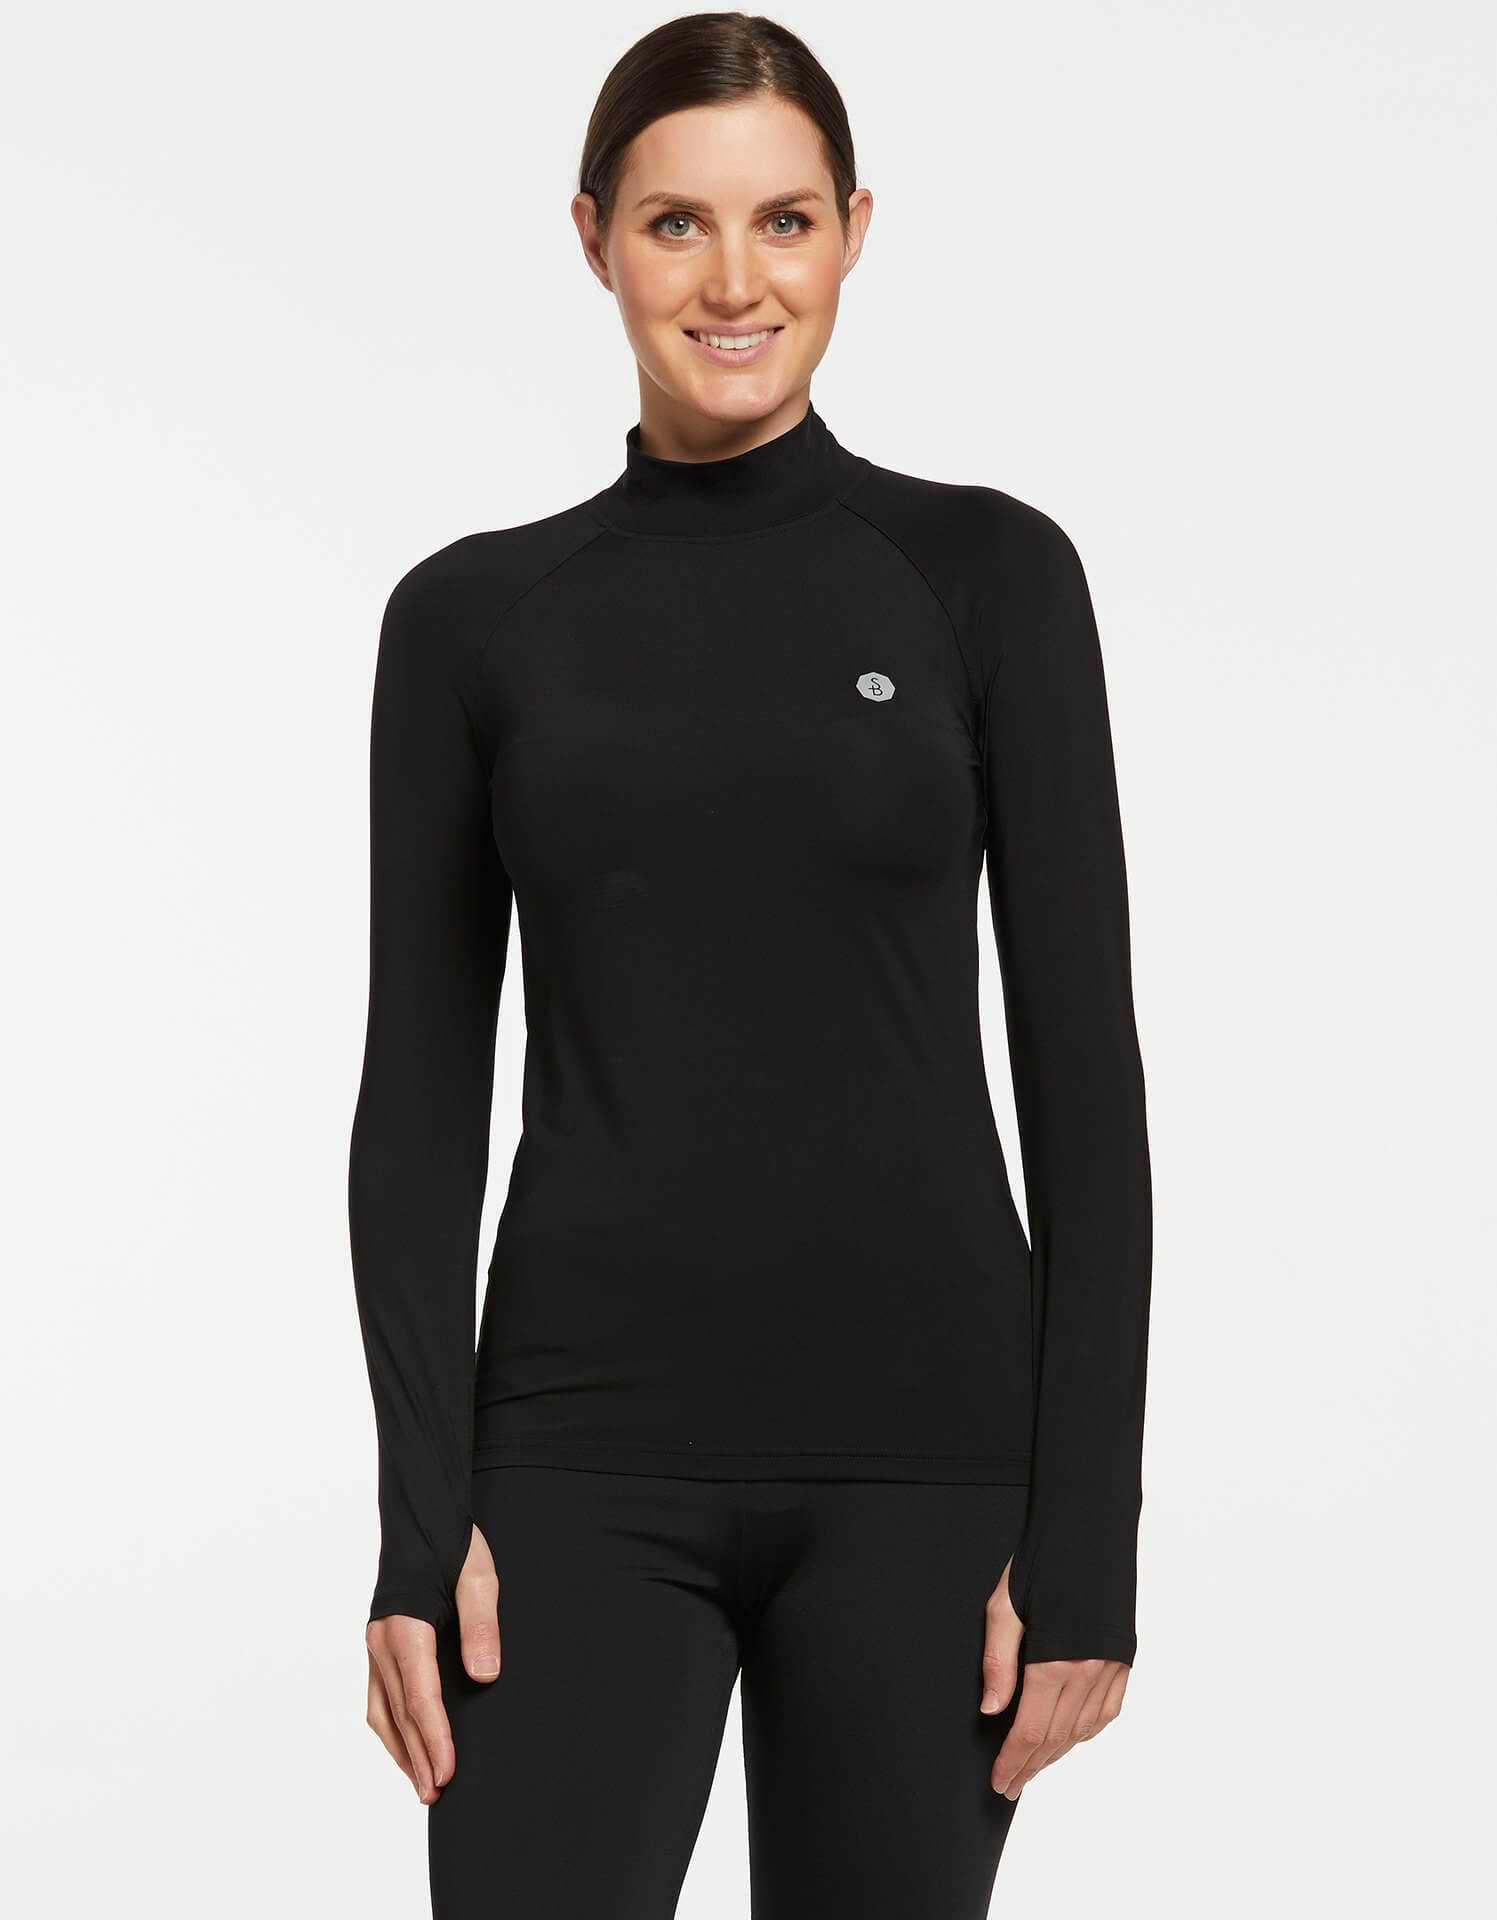 Solbari UPF 50+ Sun Protective Black Turtleneck Base Layer for Women 0